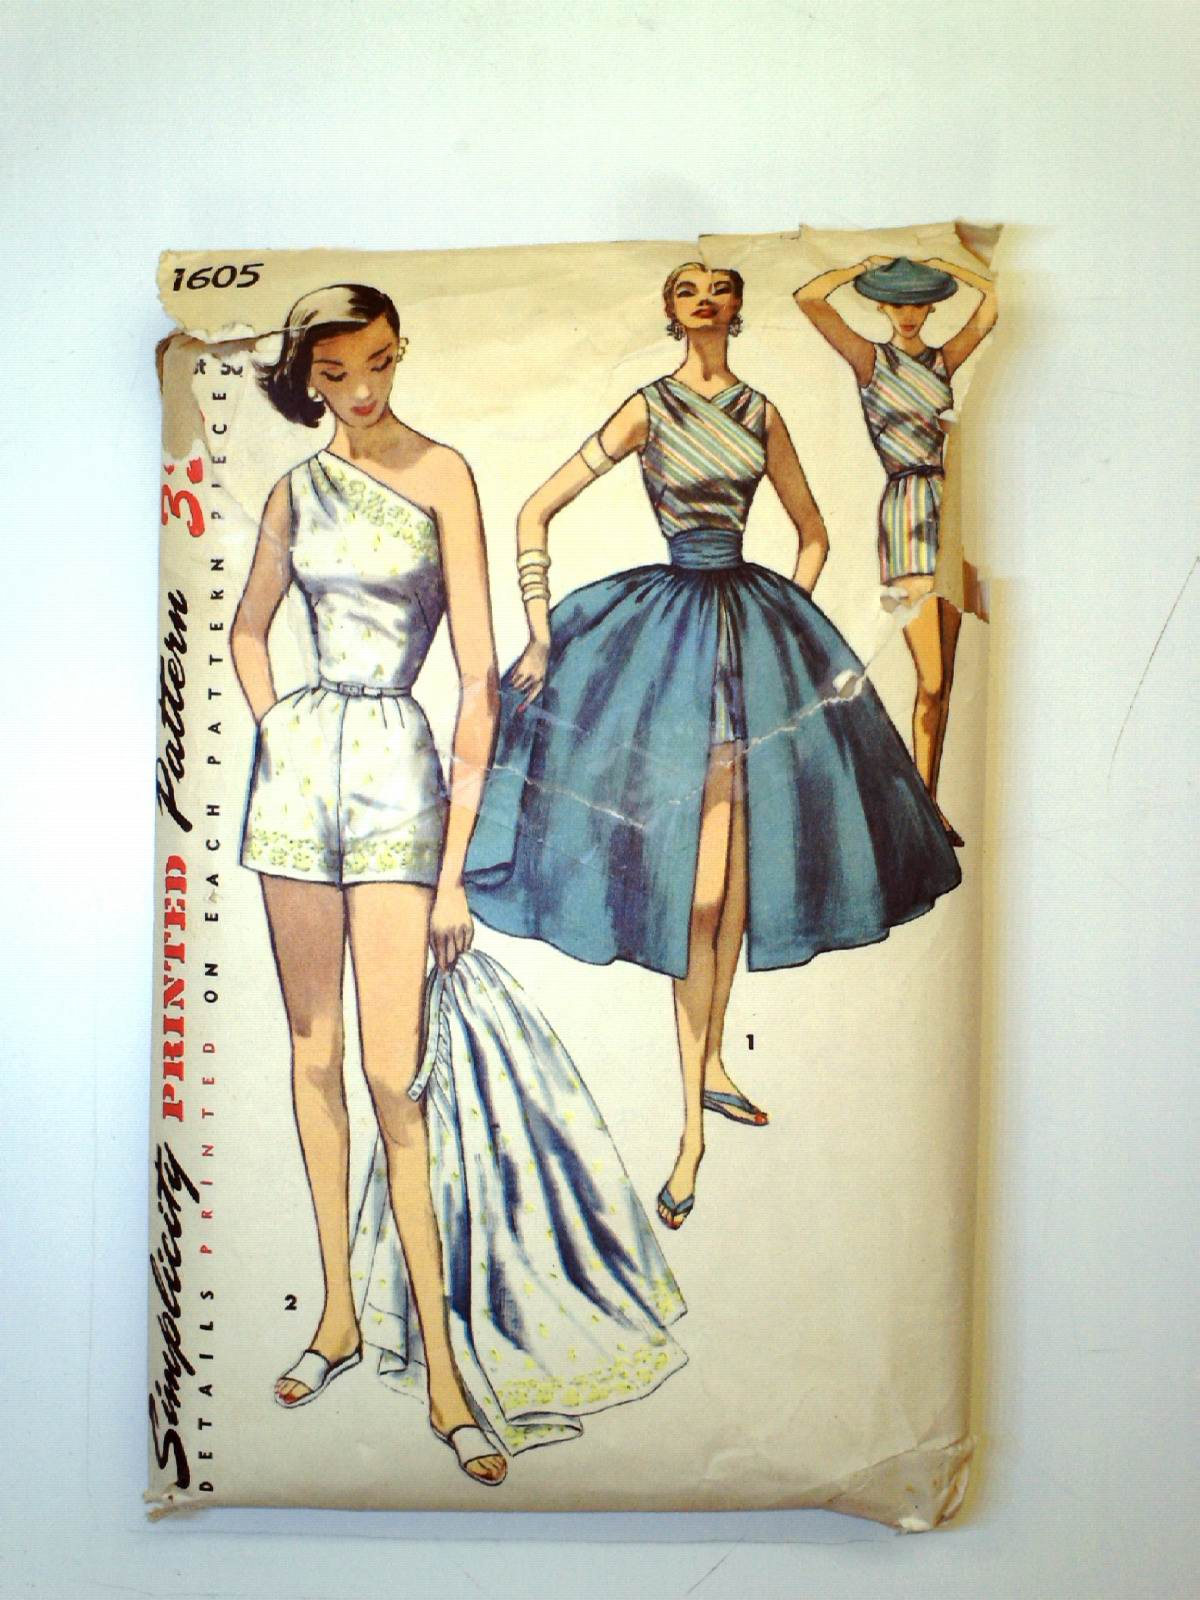 49d6760837a6 Retro 50s Sewing Pattern (Simplicity Pattern No. 1605)   50s ...